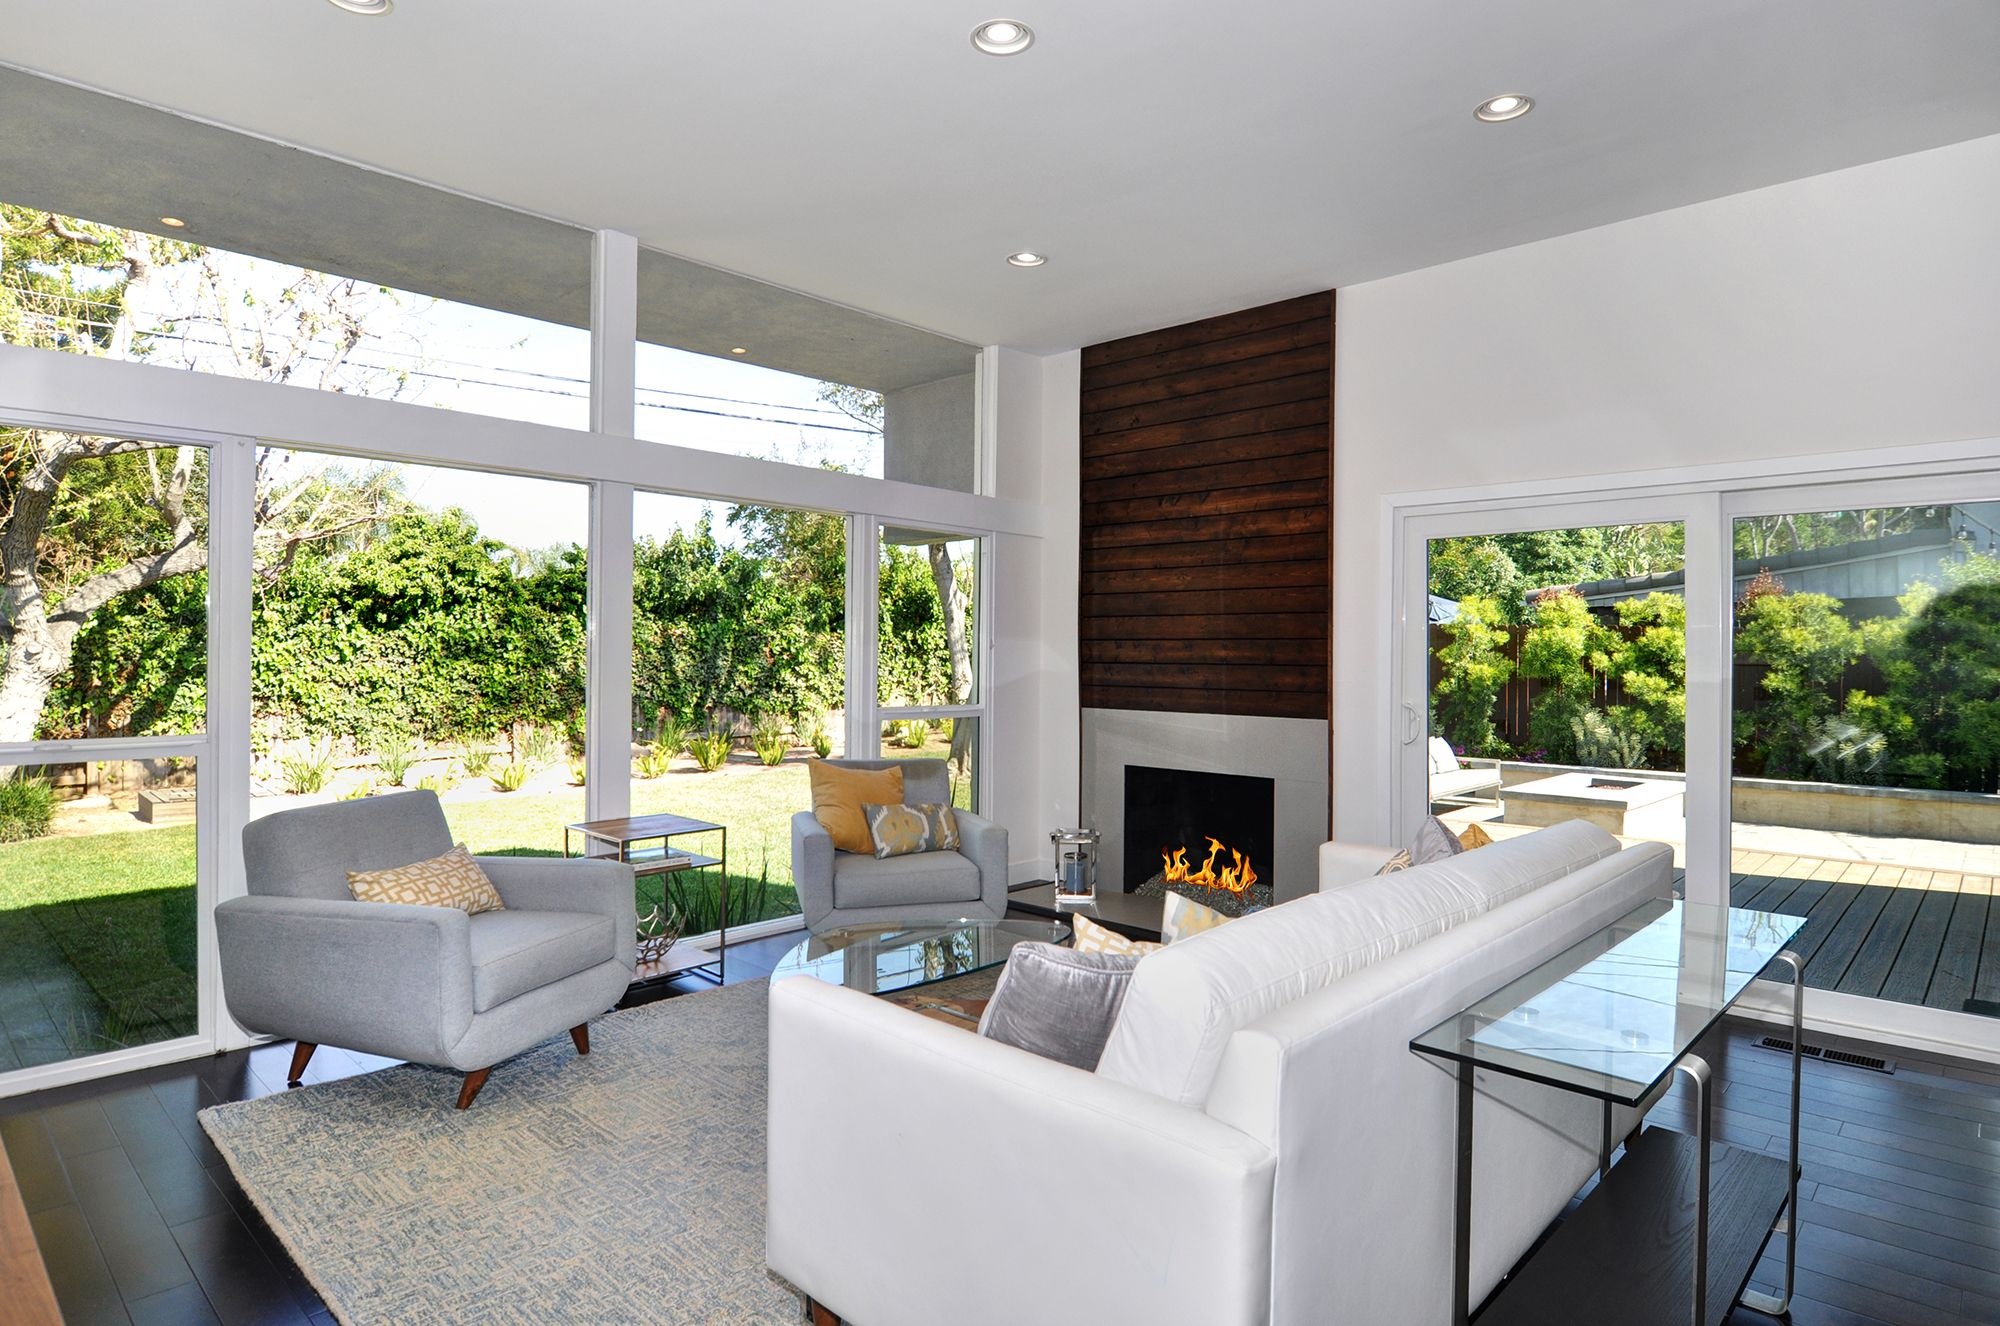 eichler inspired mid century modern home featuring 12 ceilings